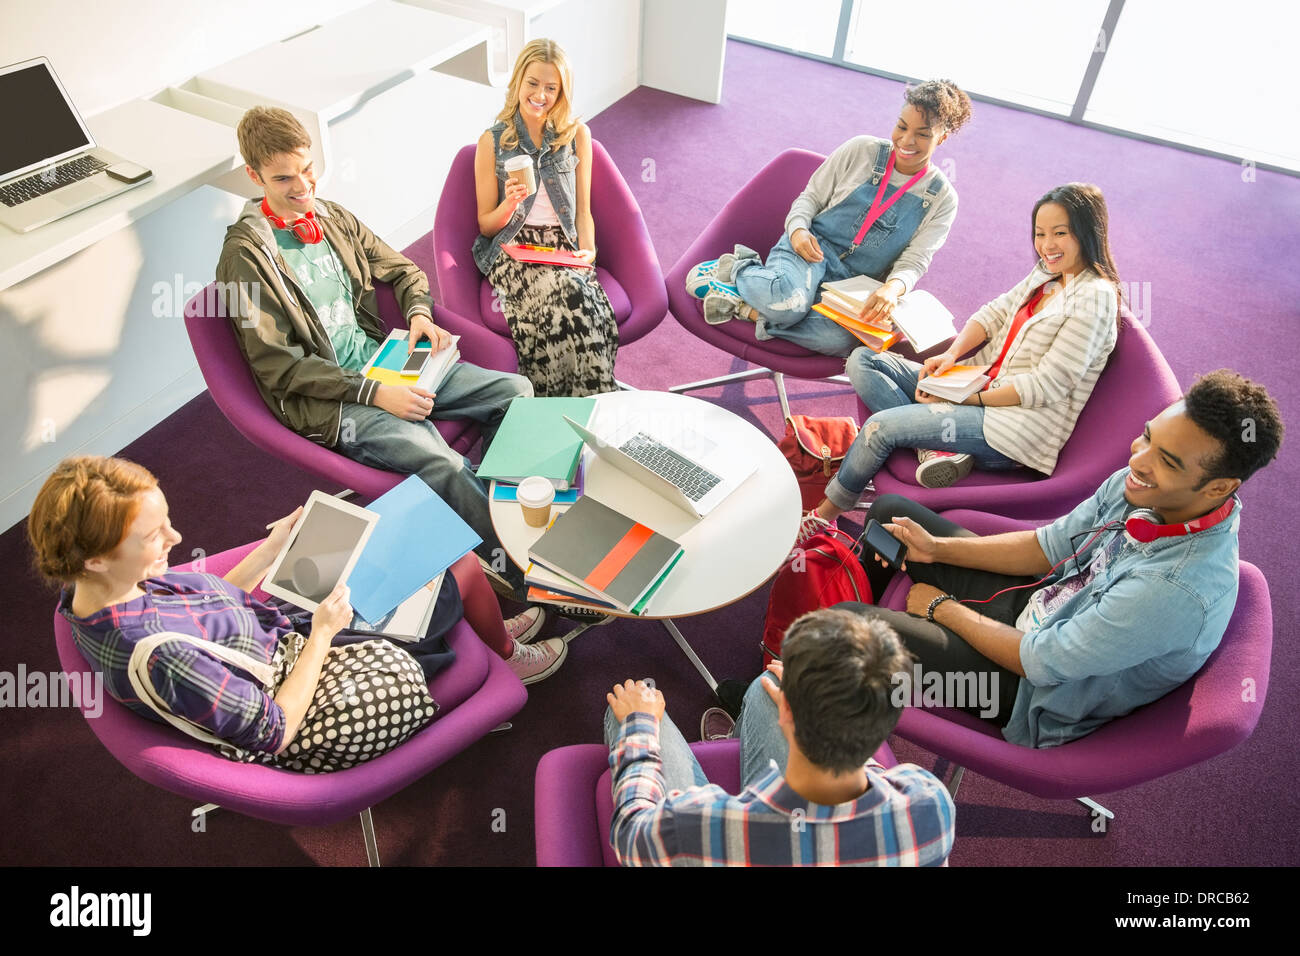 University students talking in circle - Stock Image